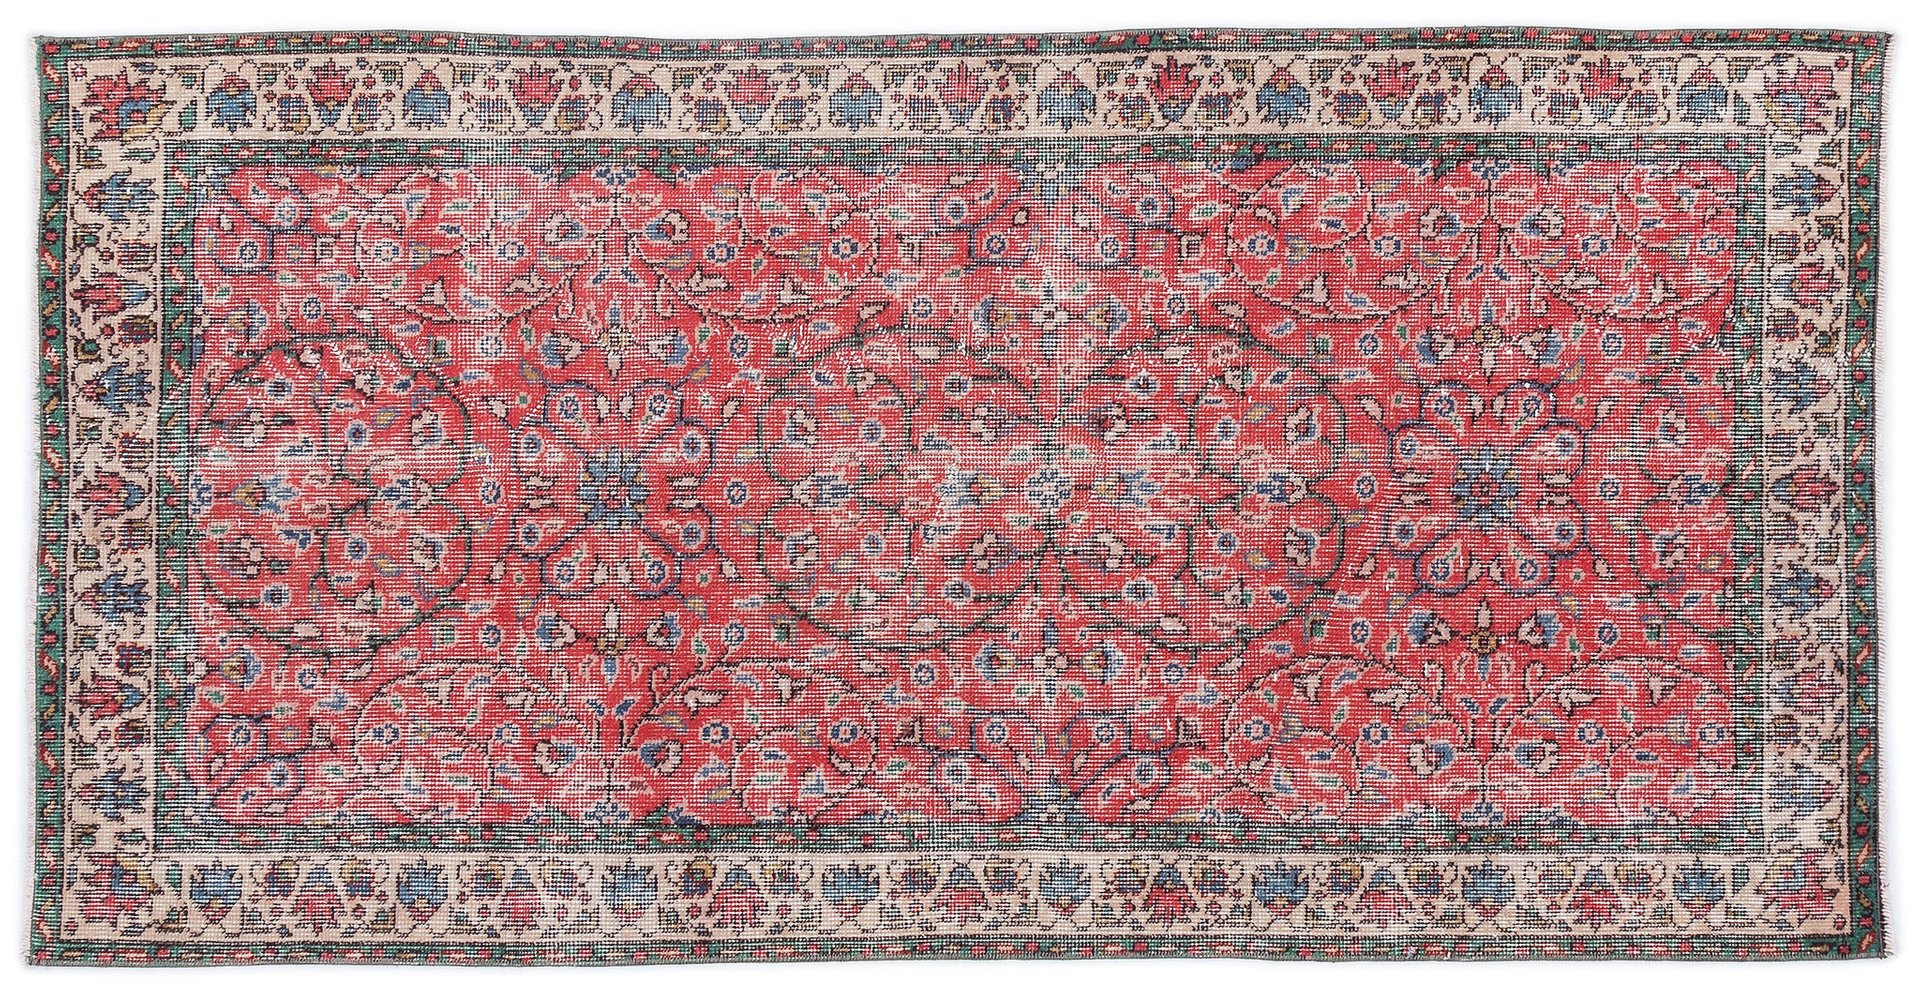 Vintage Red Turkish Overdyed Rug, 1960s